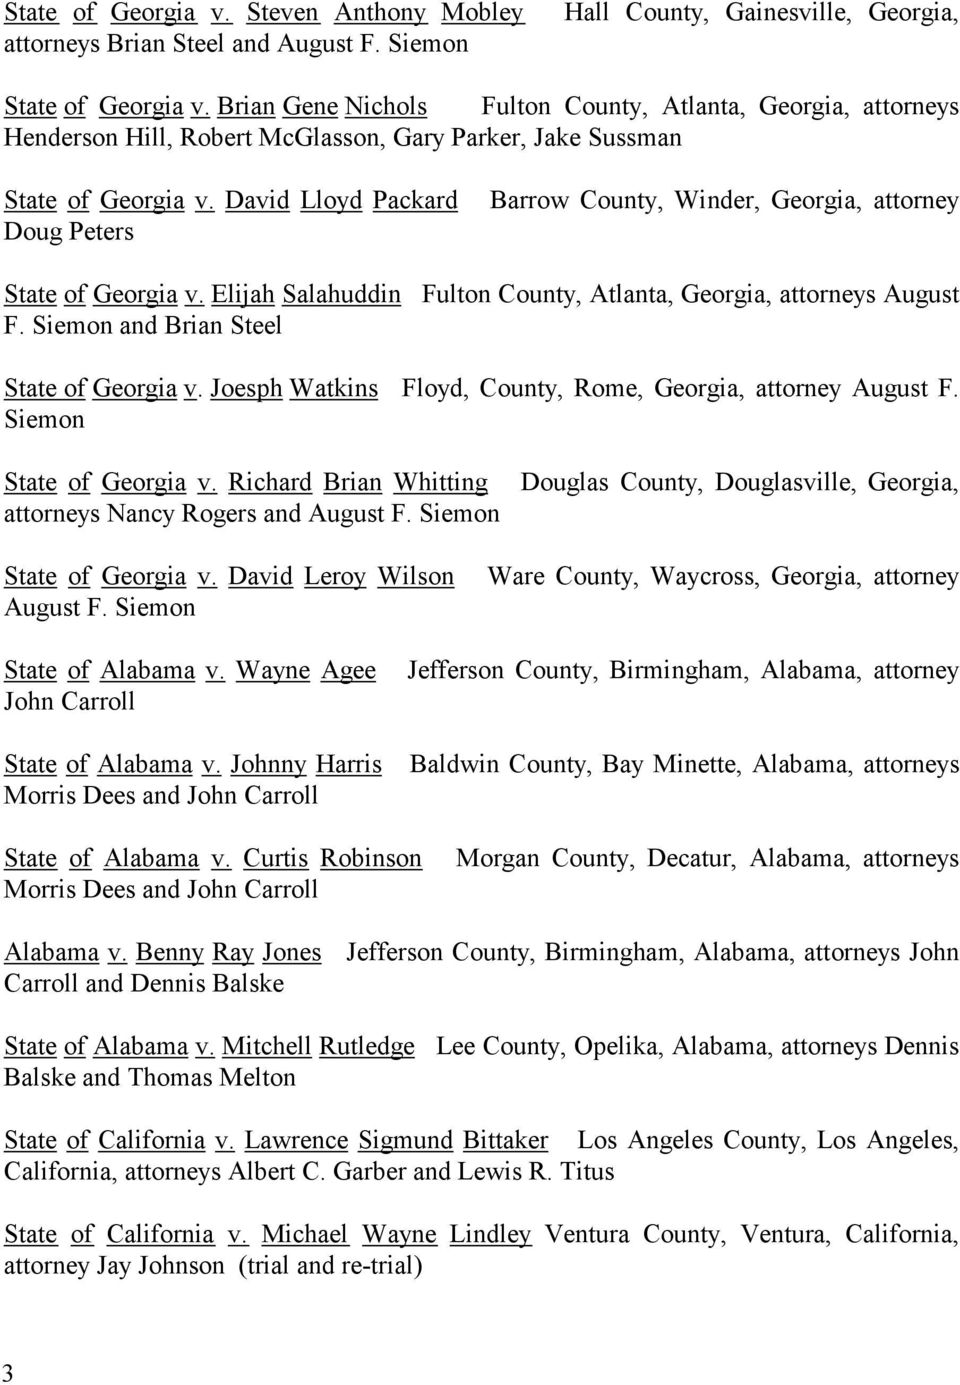 David Lloyd Packard Doug Peters Barrow County, Winder, Georgia, attorney State of Georgia v. Elijah Salahuddin Fulton County, Atlanta, Georgia, attorneys August F.